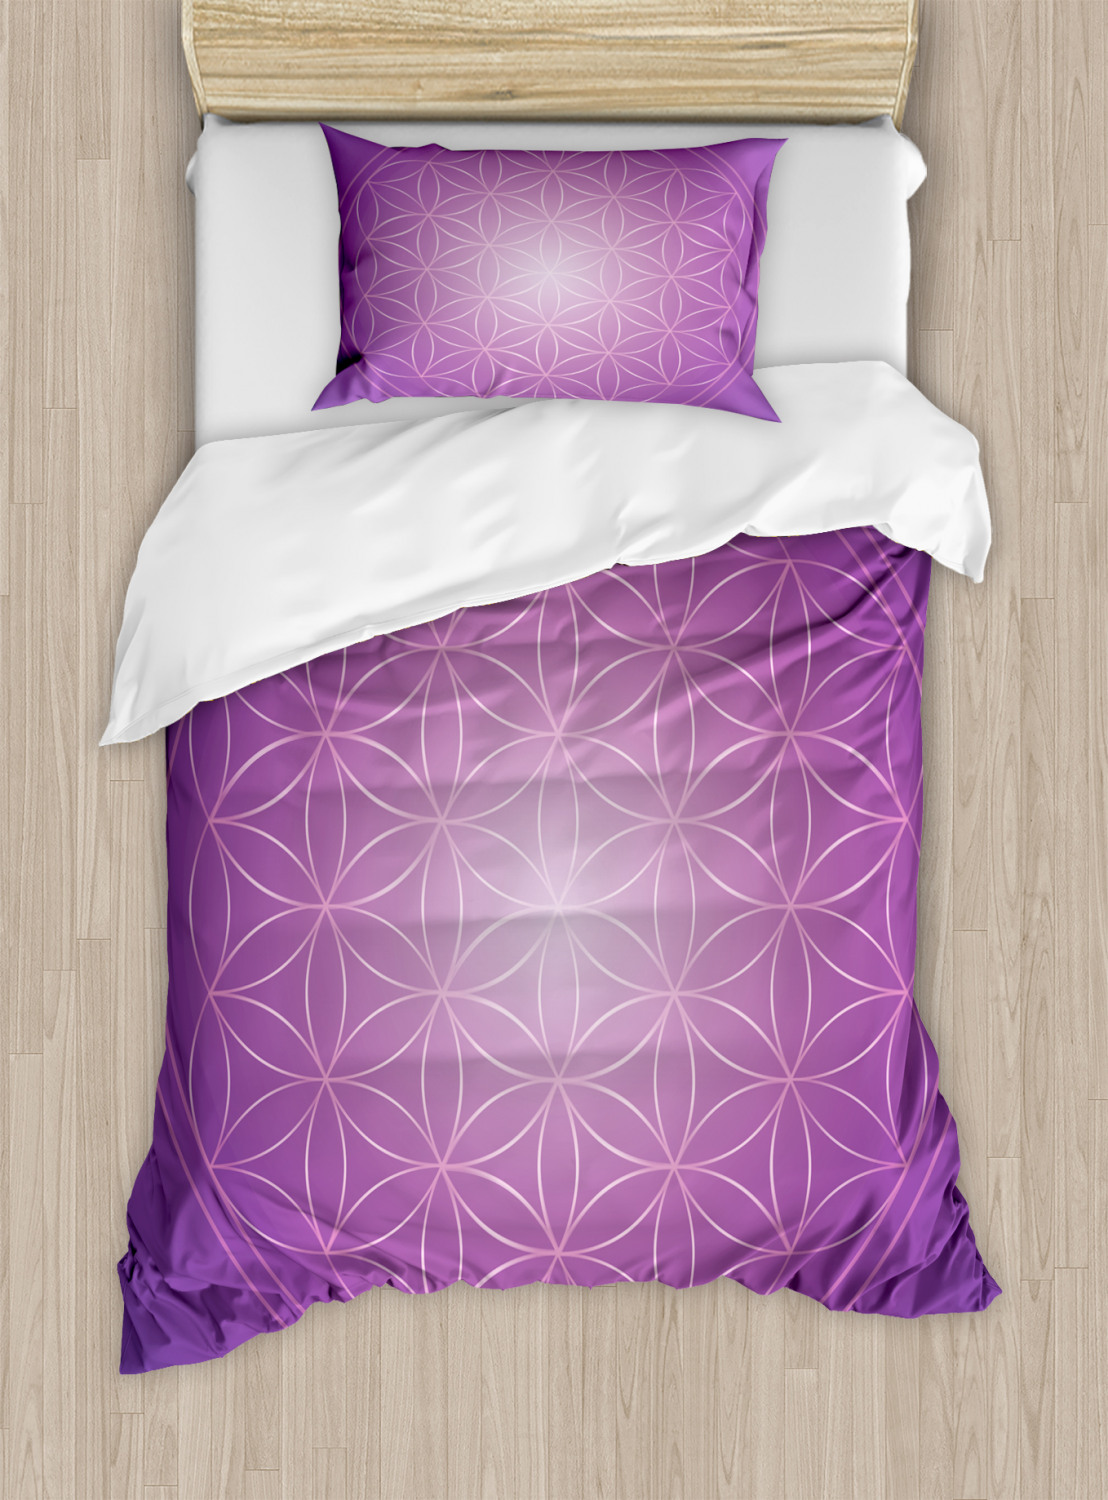 Flower-of-Life-Duvet-Cover-Set-Twin-Queen-King-Sizes-with-Pillow-Shams thumbnail 28